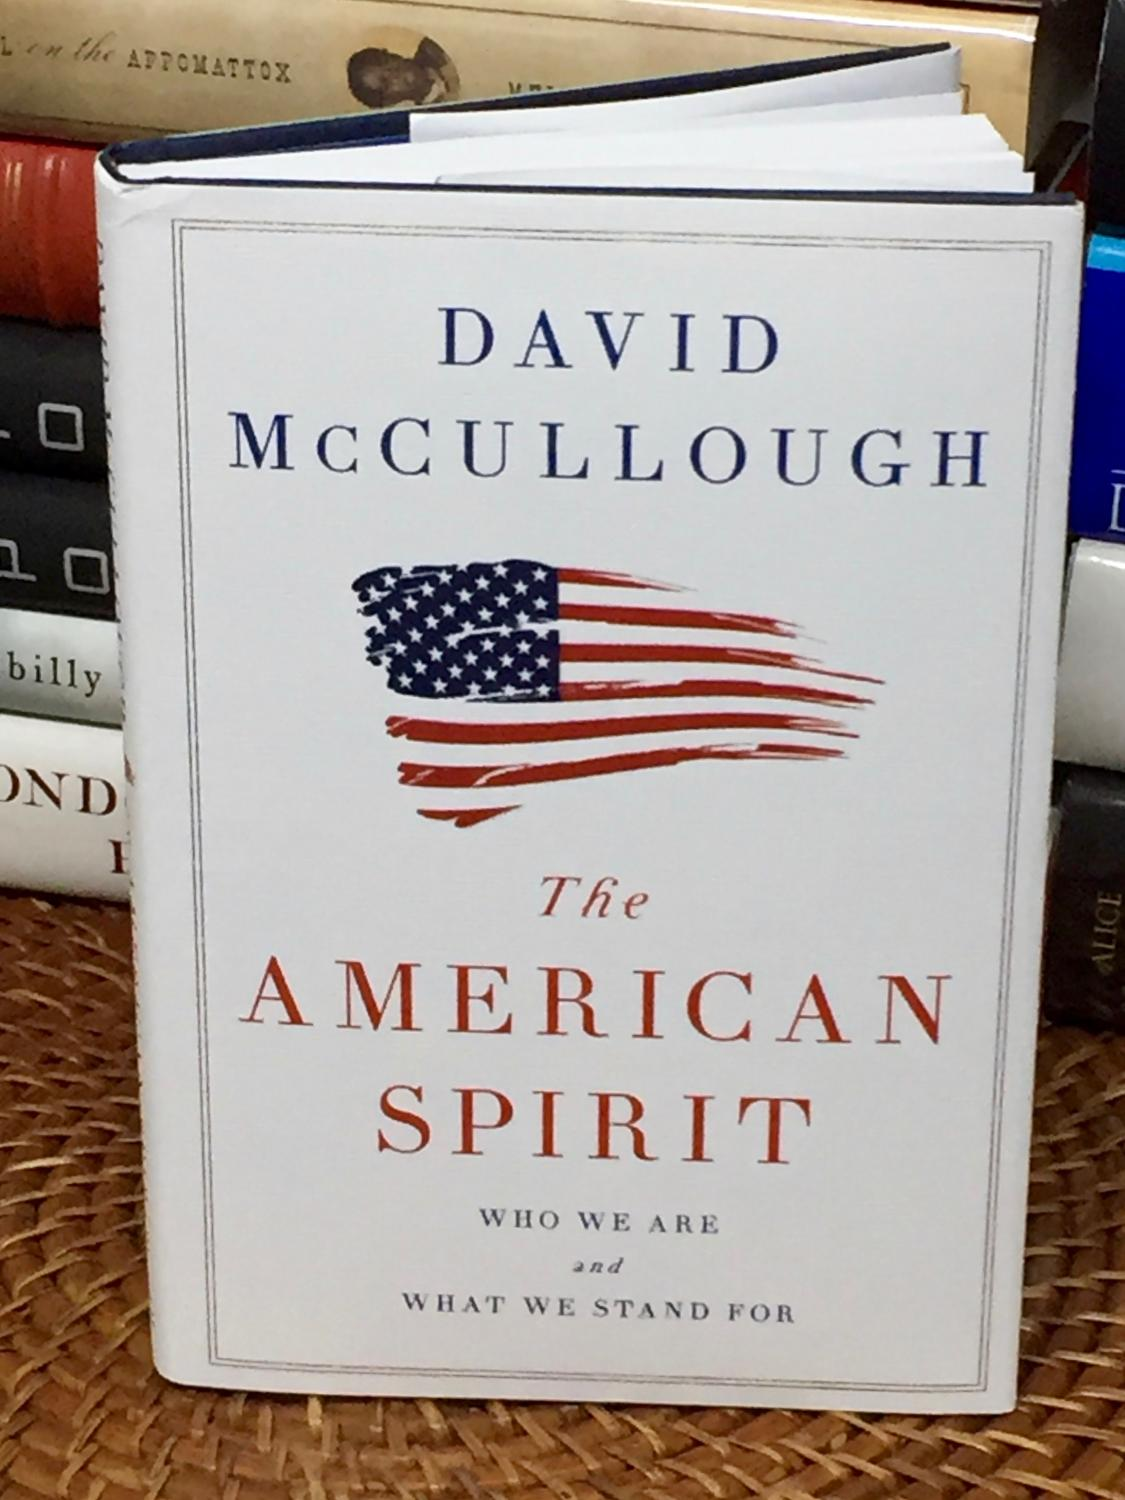 ... The American Spirit: Who We Are and What We Stand For: David McCullough